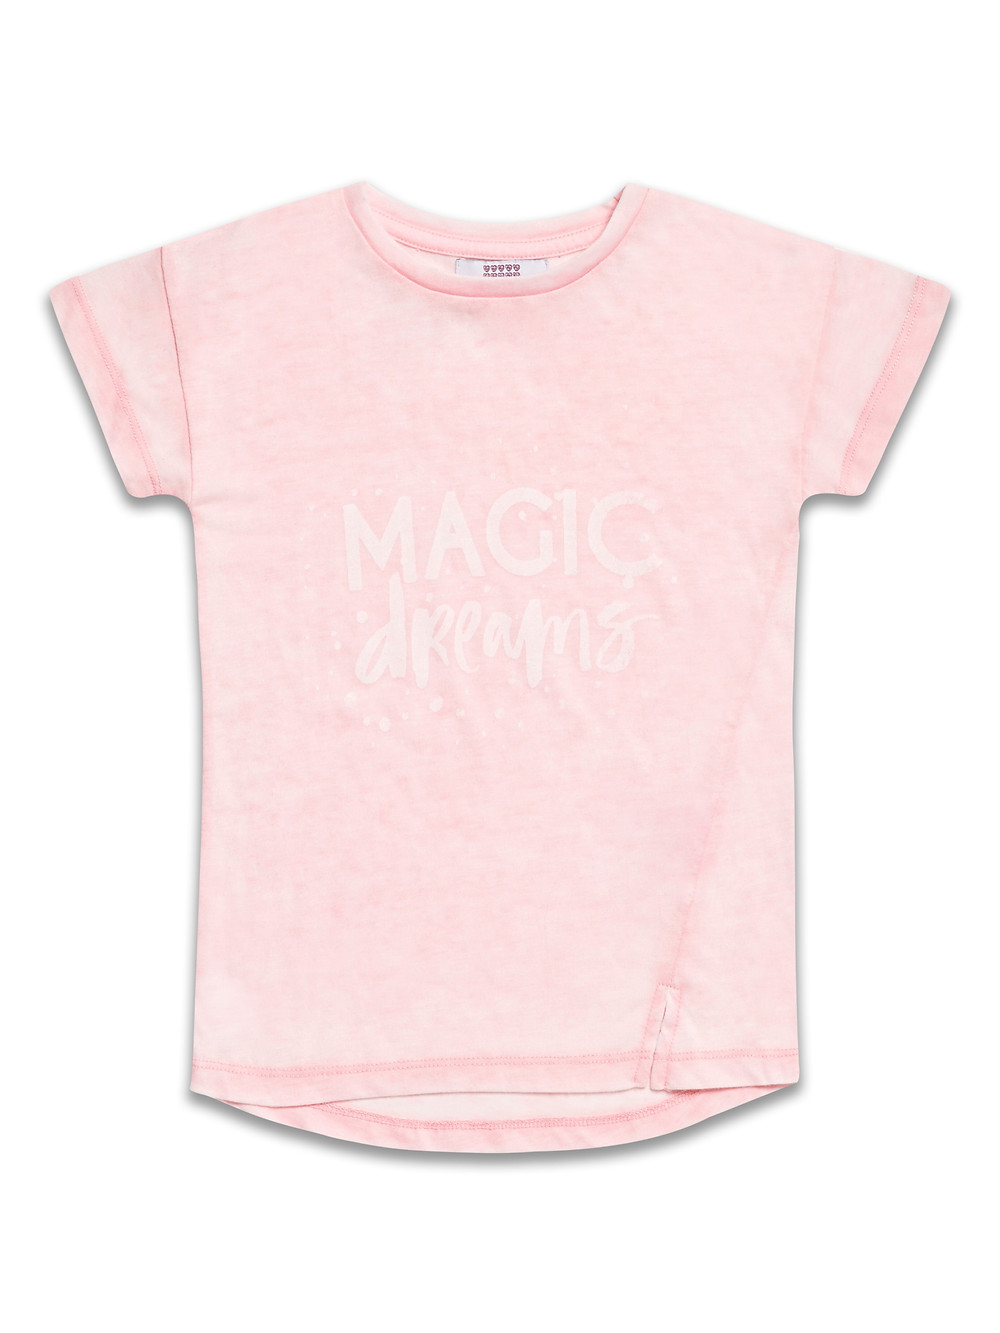 Girls pink magic dreams T-shirt